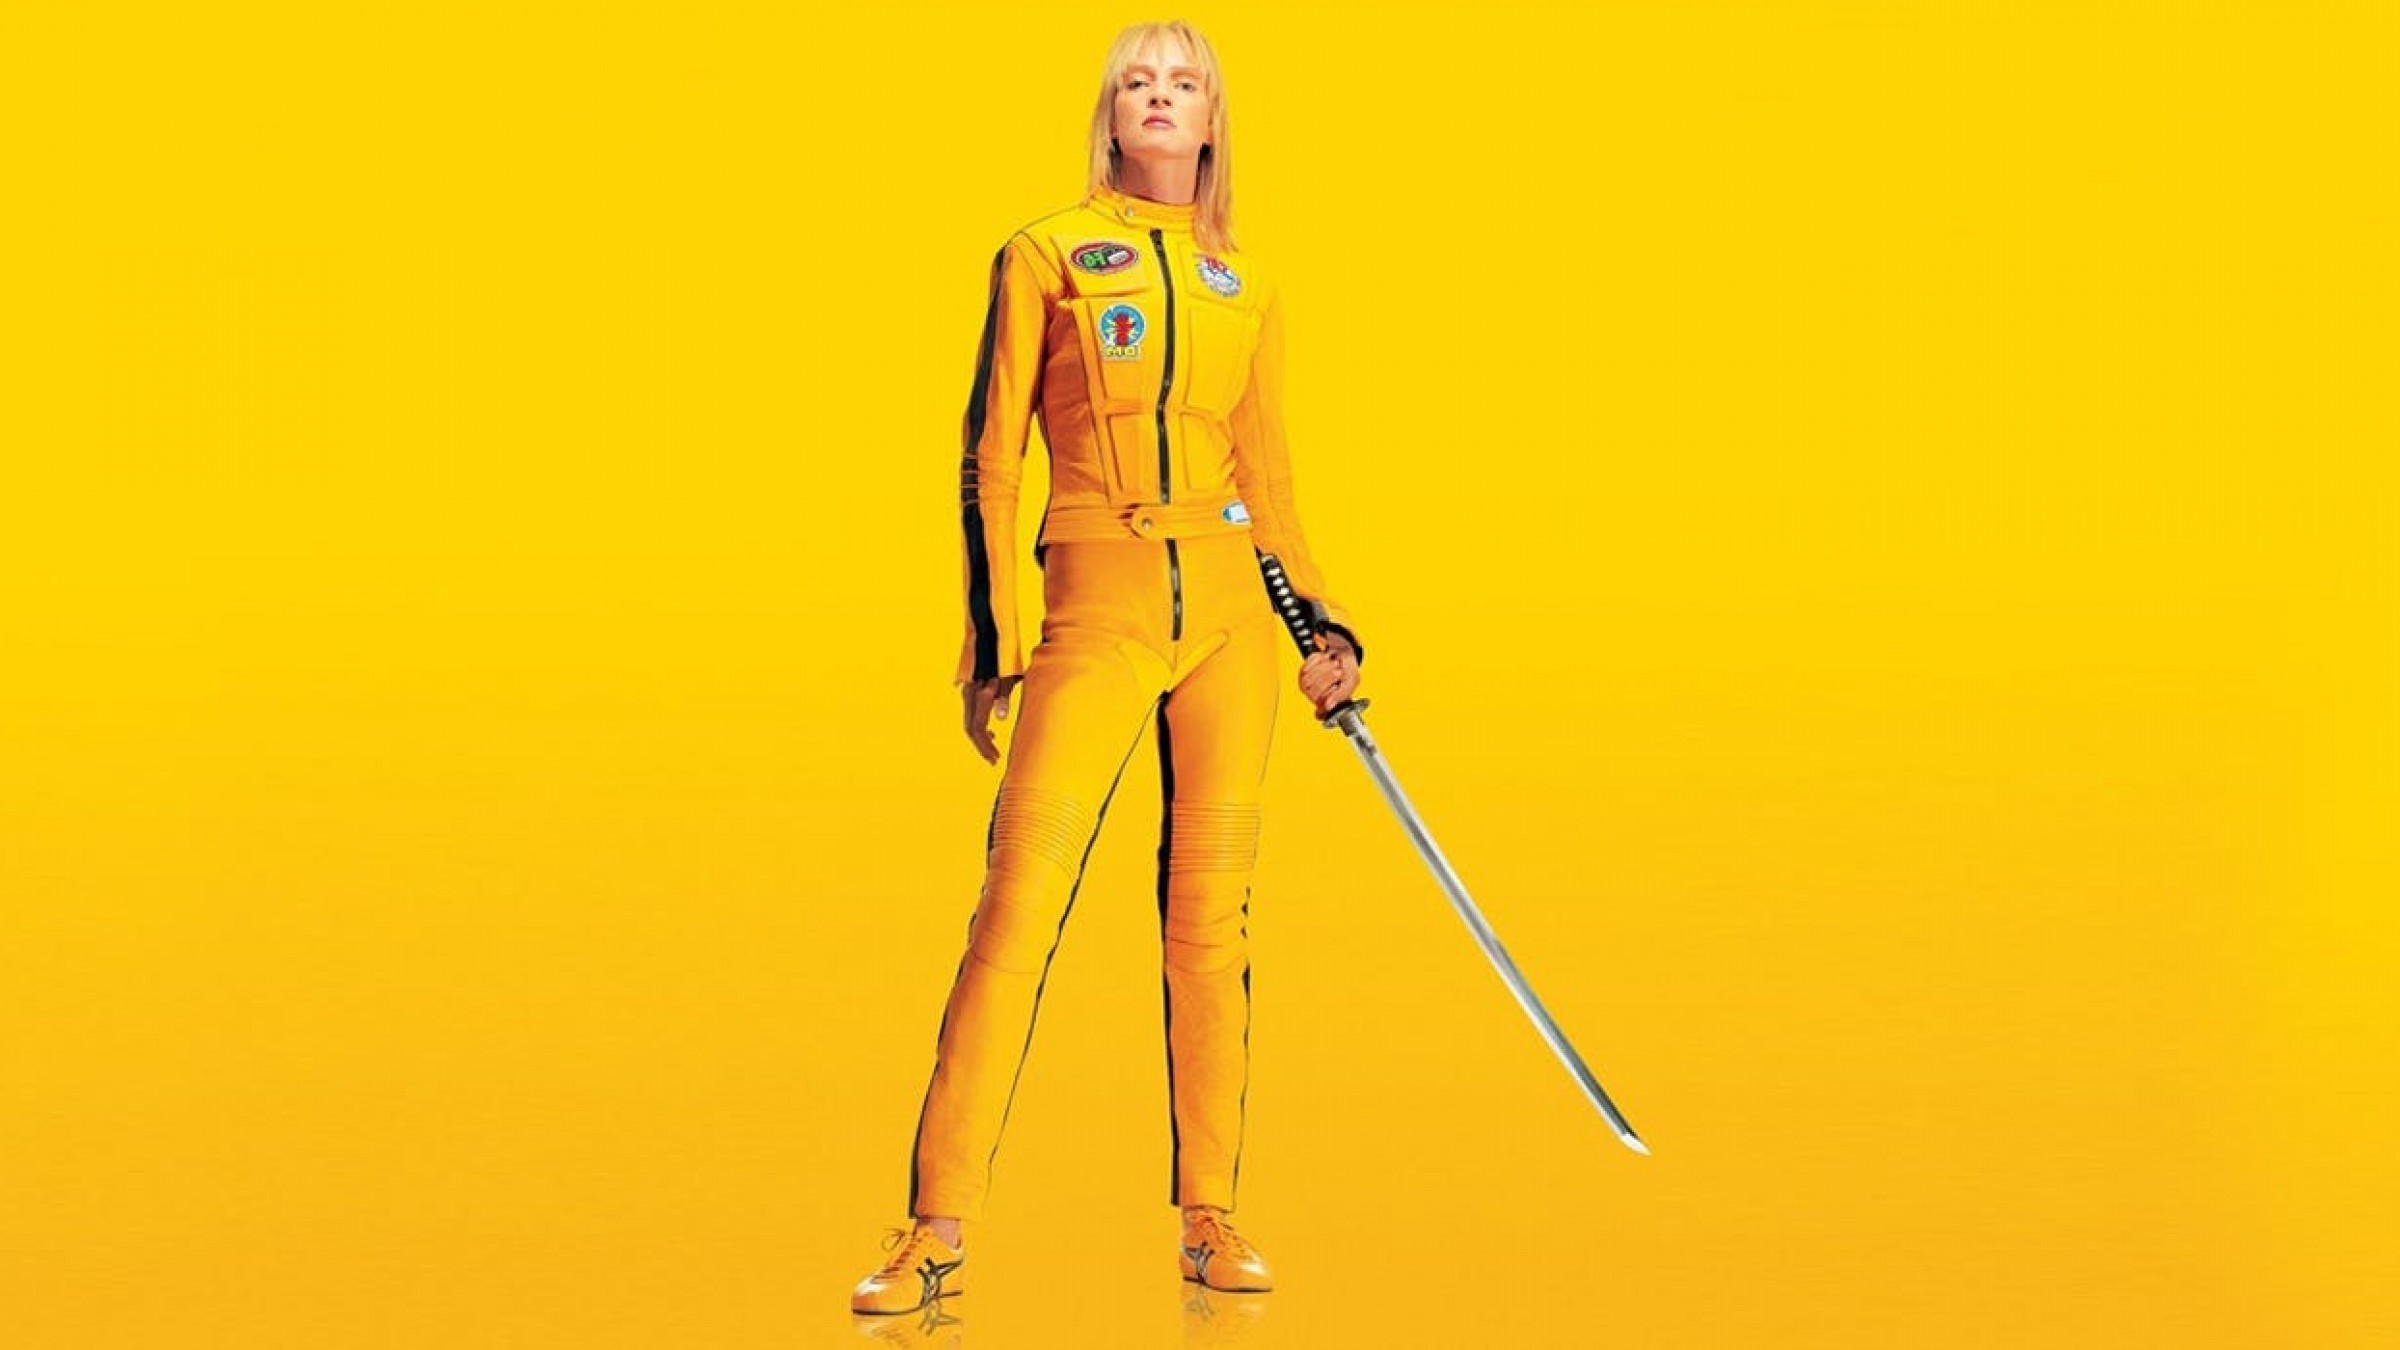 kill bill streaming